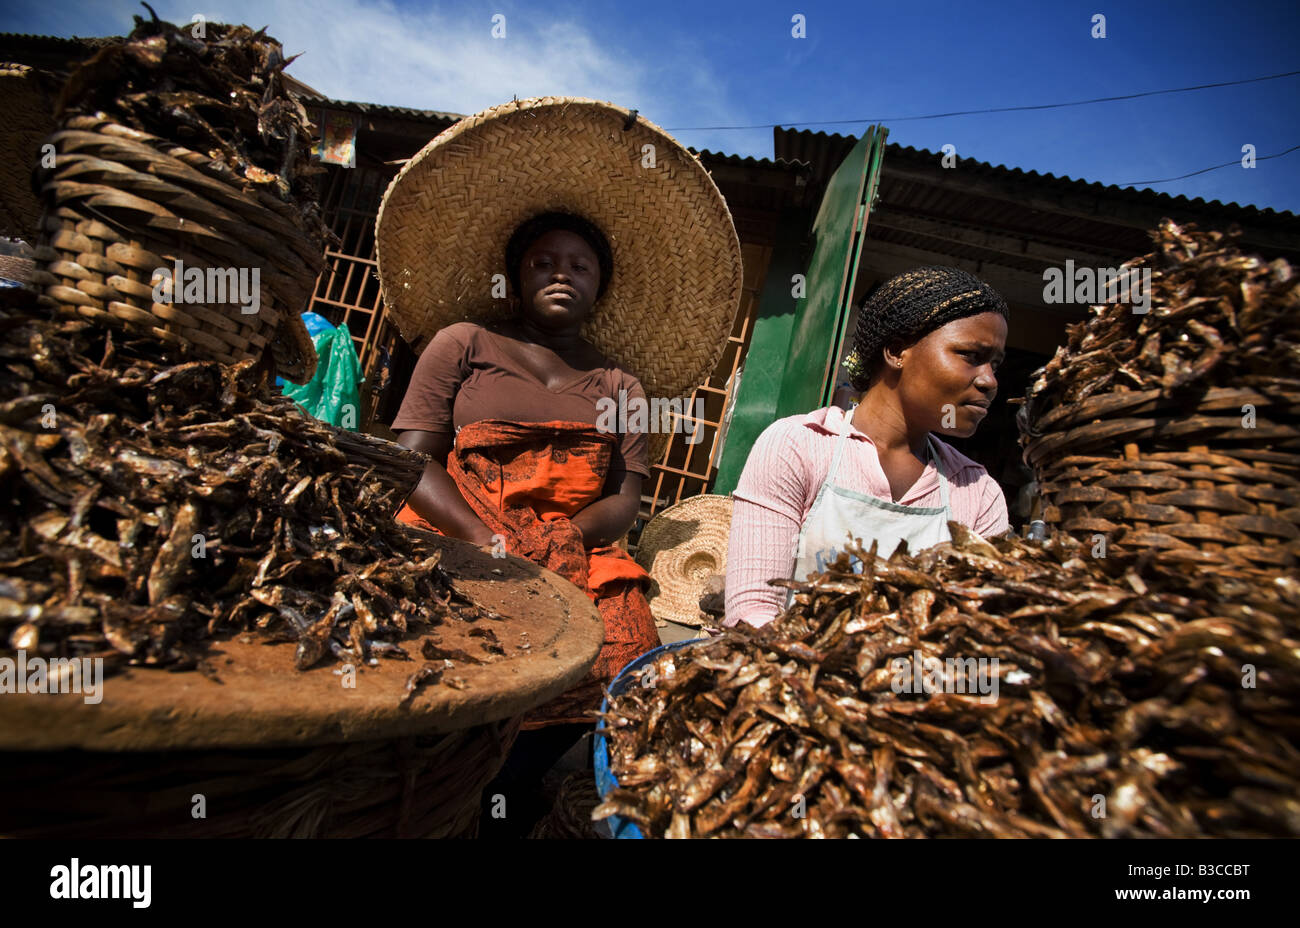 Dried fish vendors at Agbogboloshie market in Accra Ghana - Stock Image